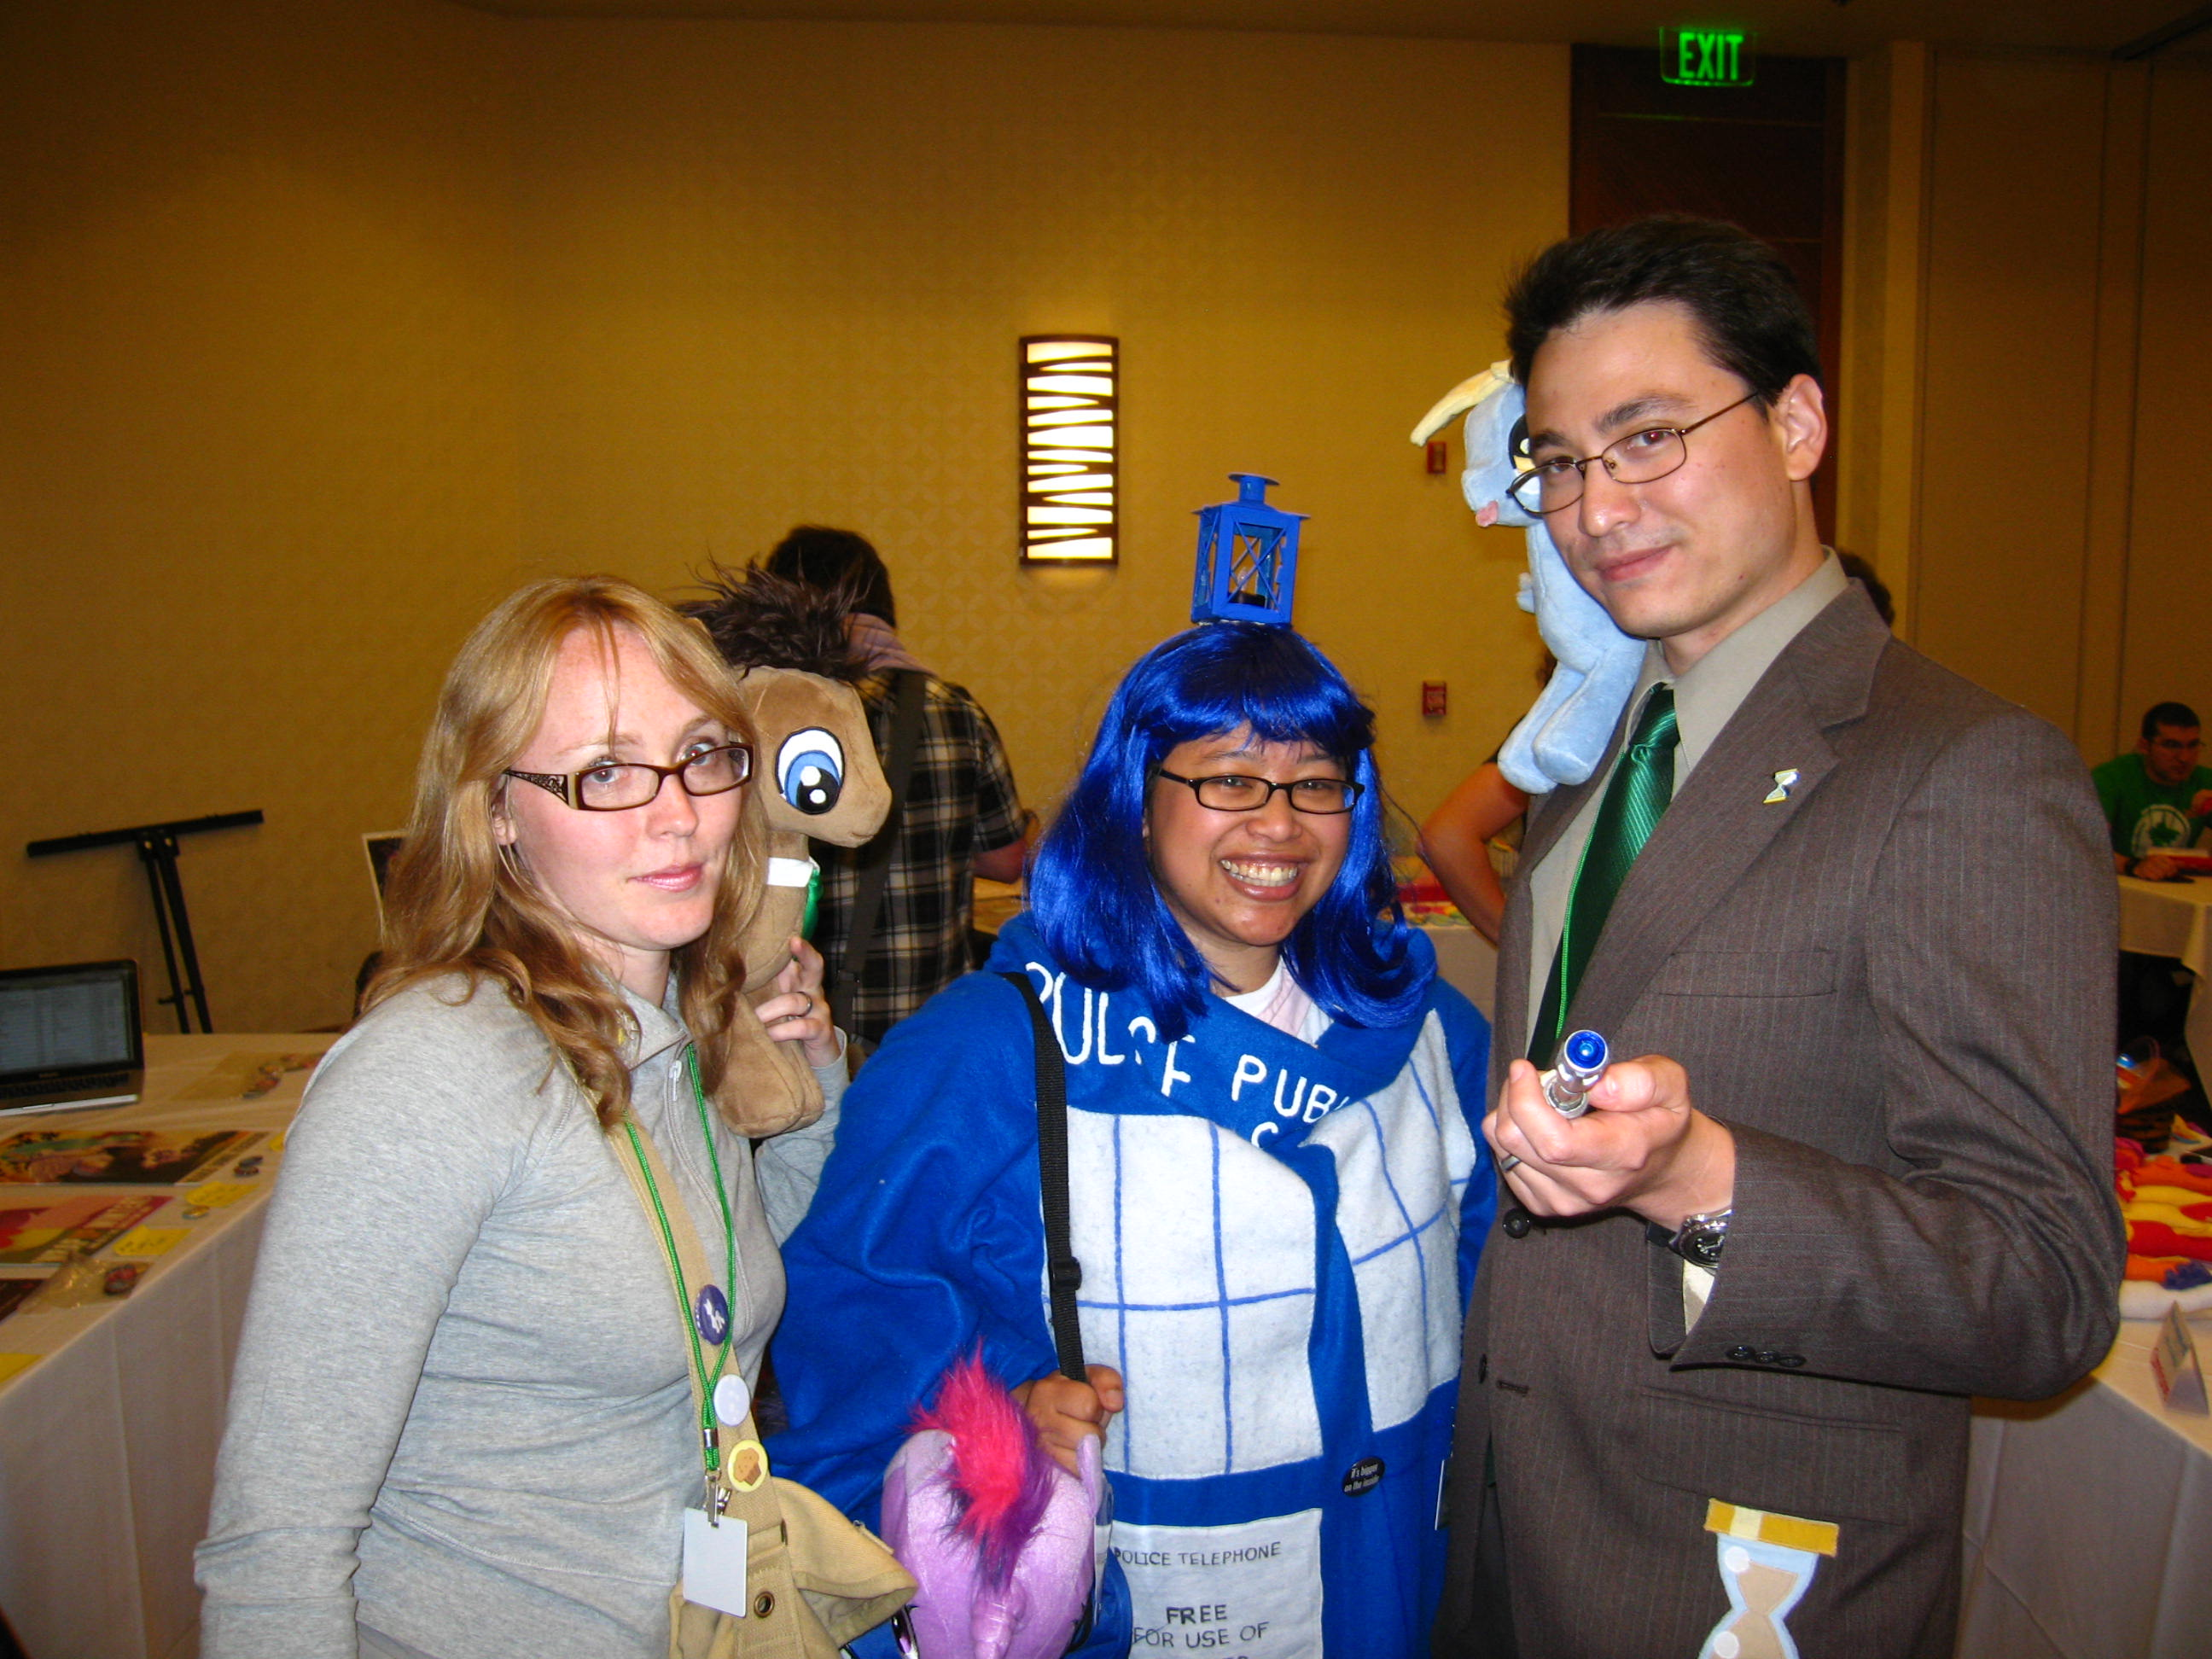 Derpy, Doctor Whooves, and TARDIS cosplay by WhiteHeather